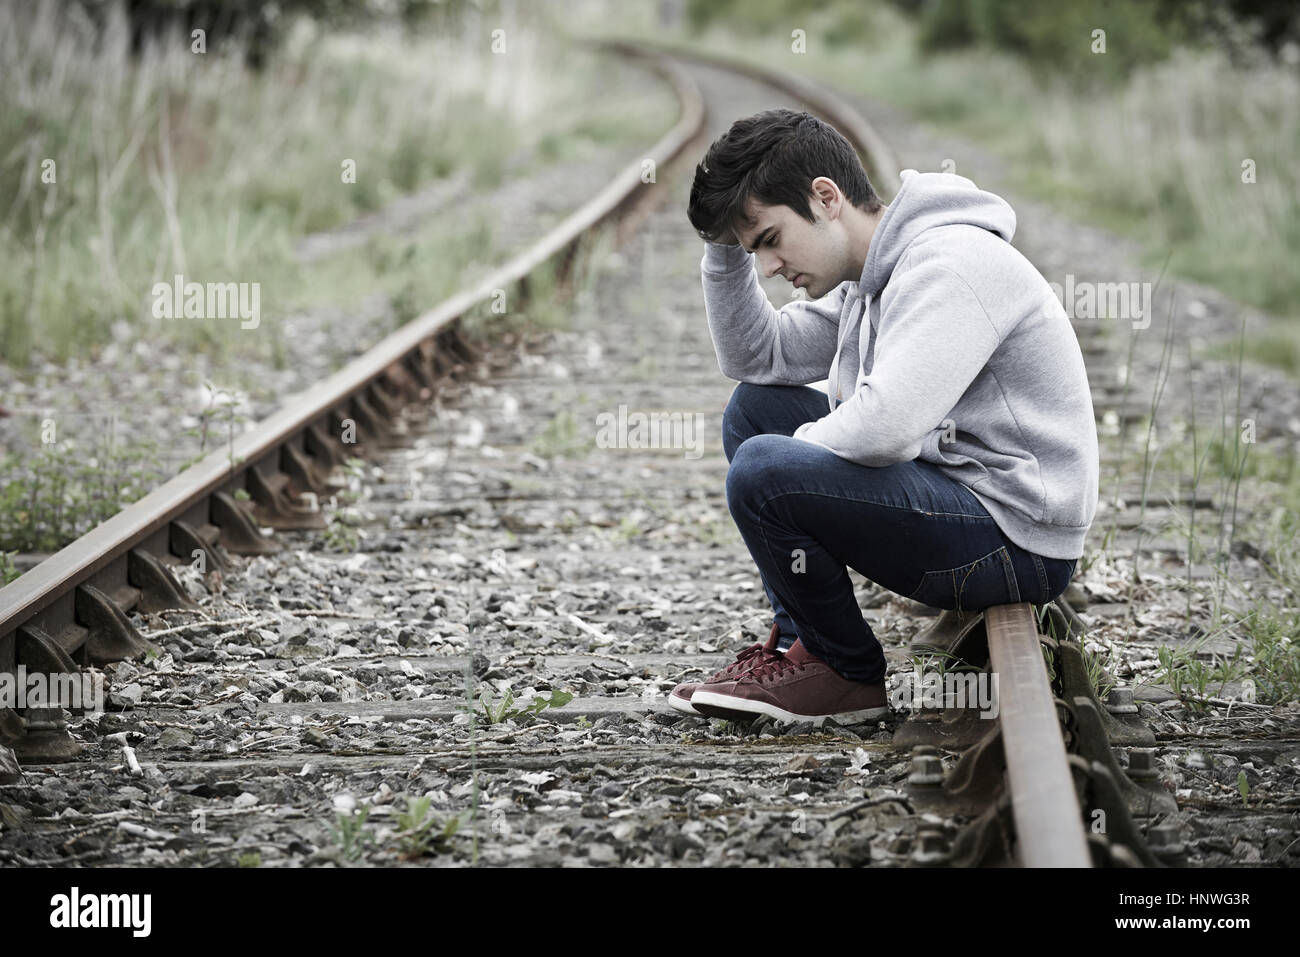 Depressed Young Man Sitting On Railway Track - Stock Image